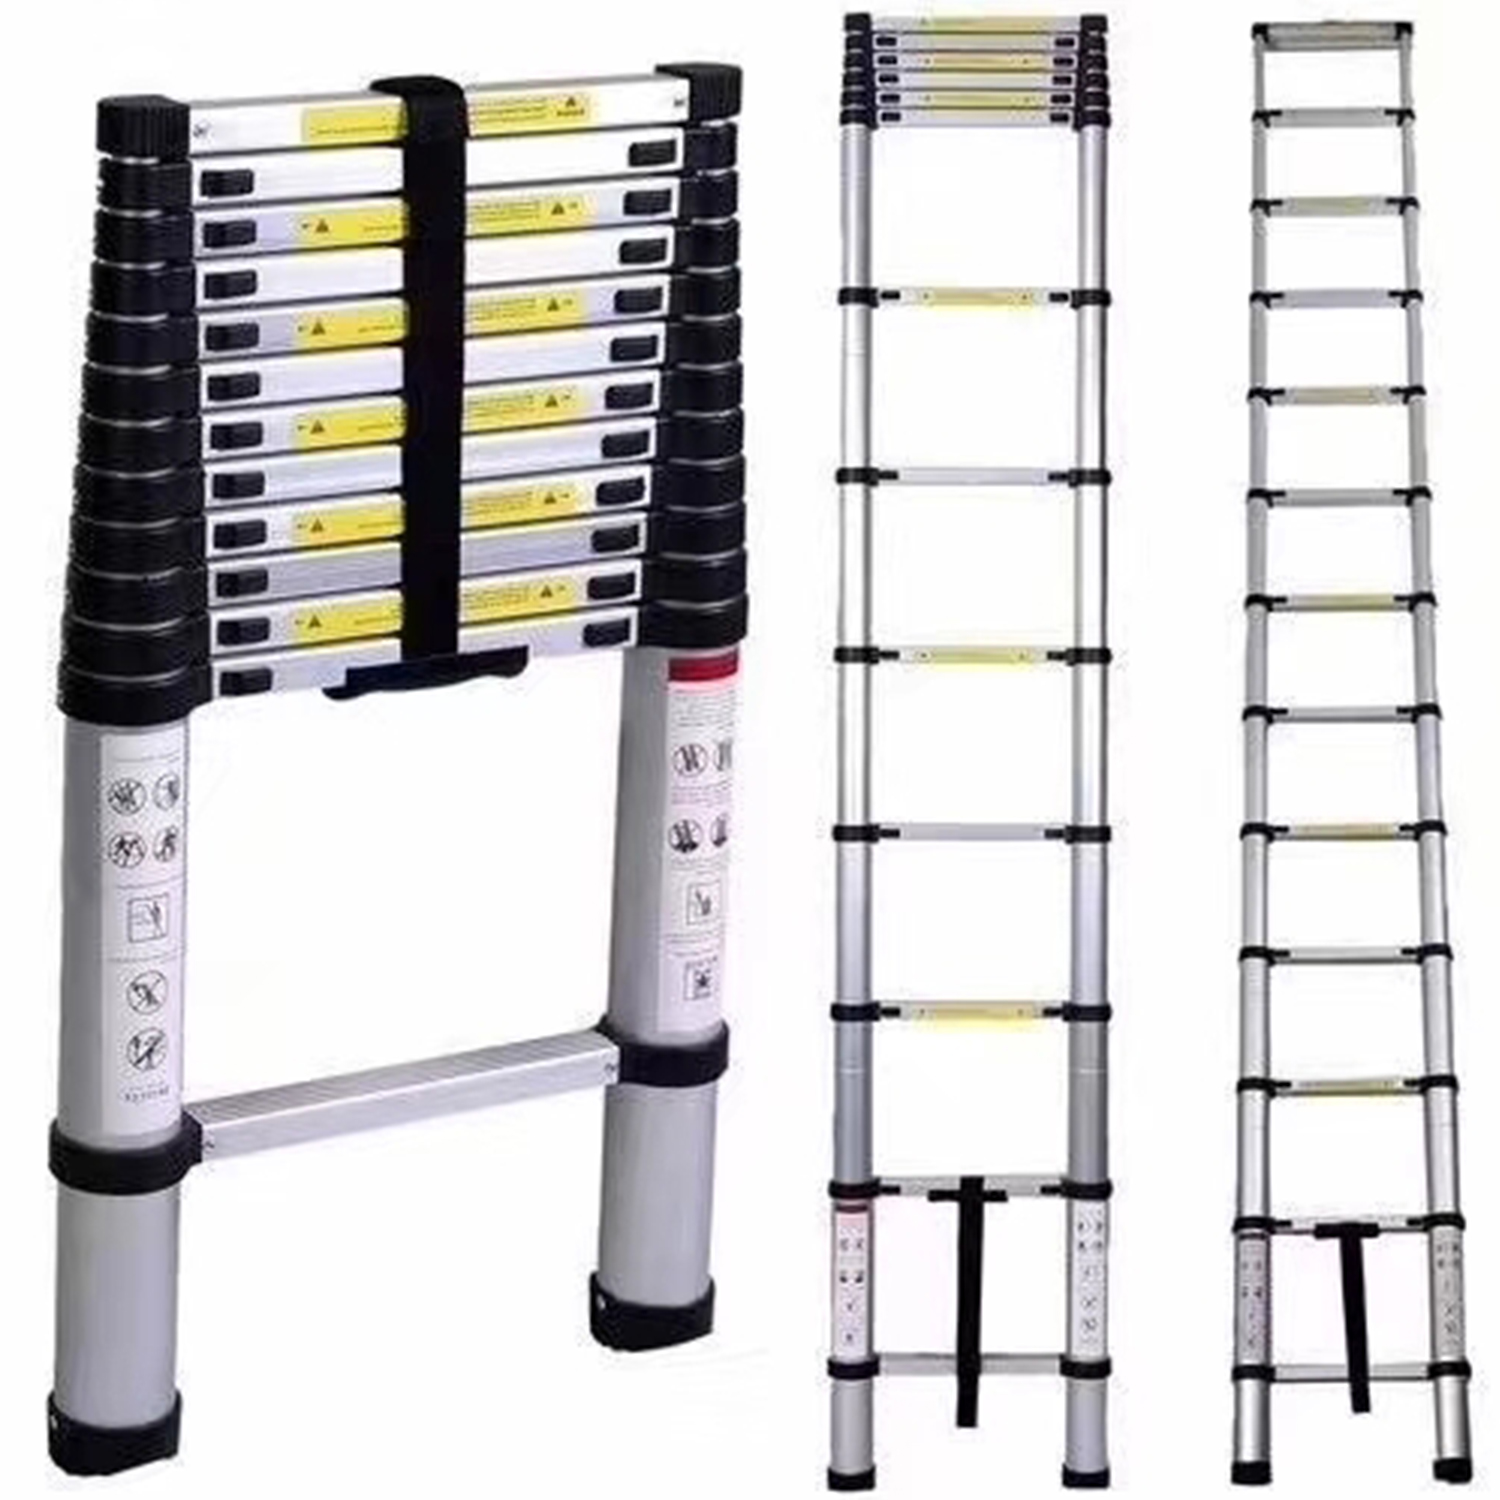 Extension Telescopic Ladders Portable Expandable Retractable Foldable Aluminum Ladder With One Button Collapsible Folding